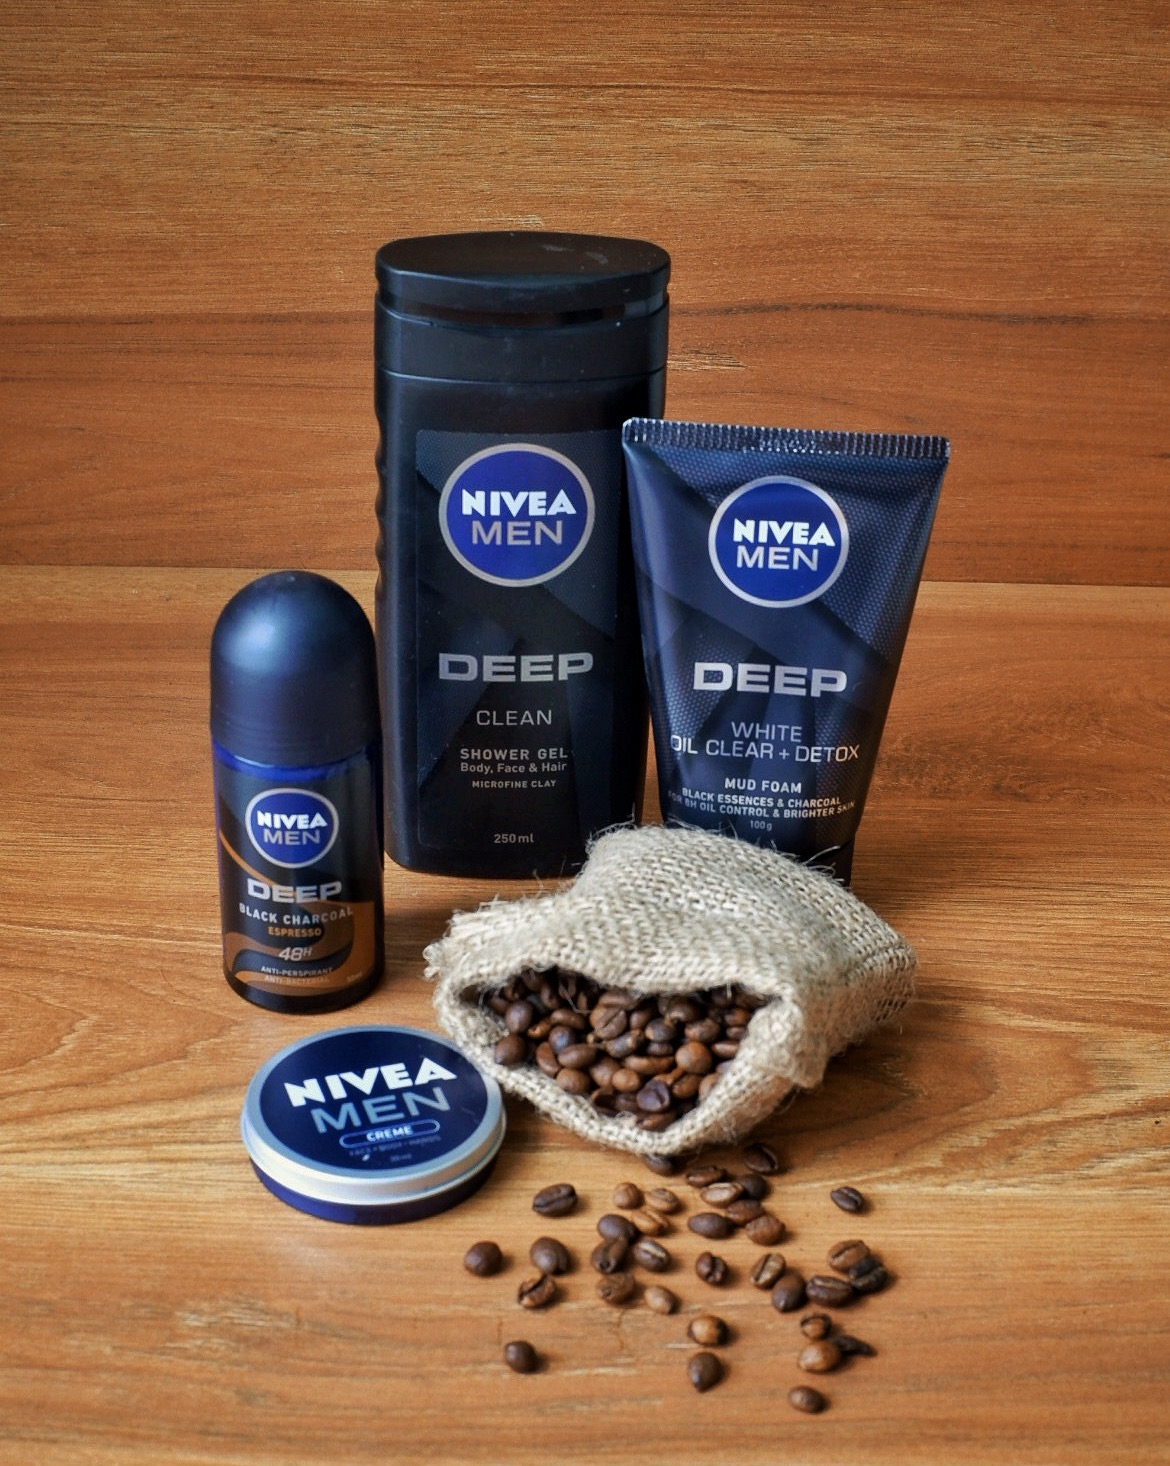 NIVEA MEN DEEP gift set